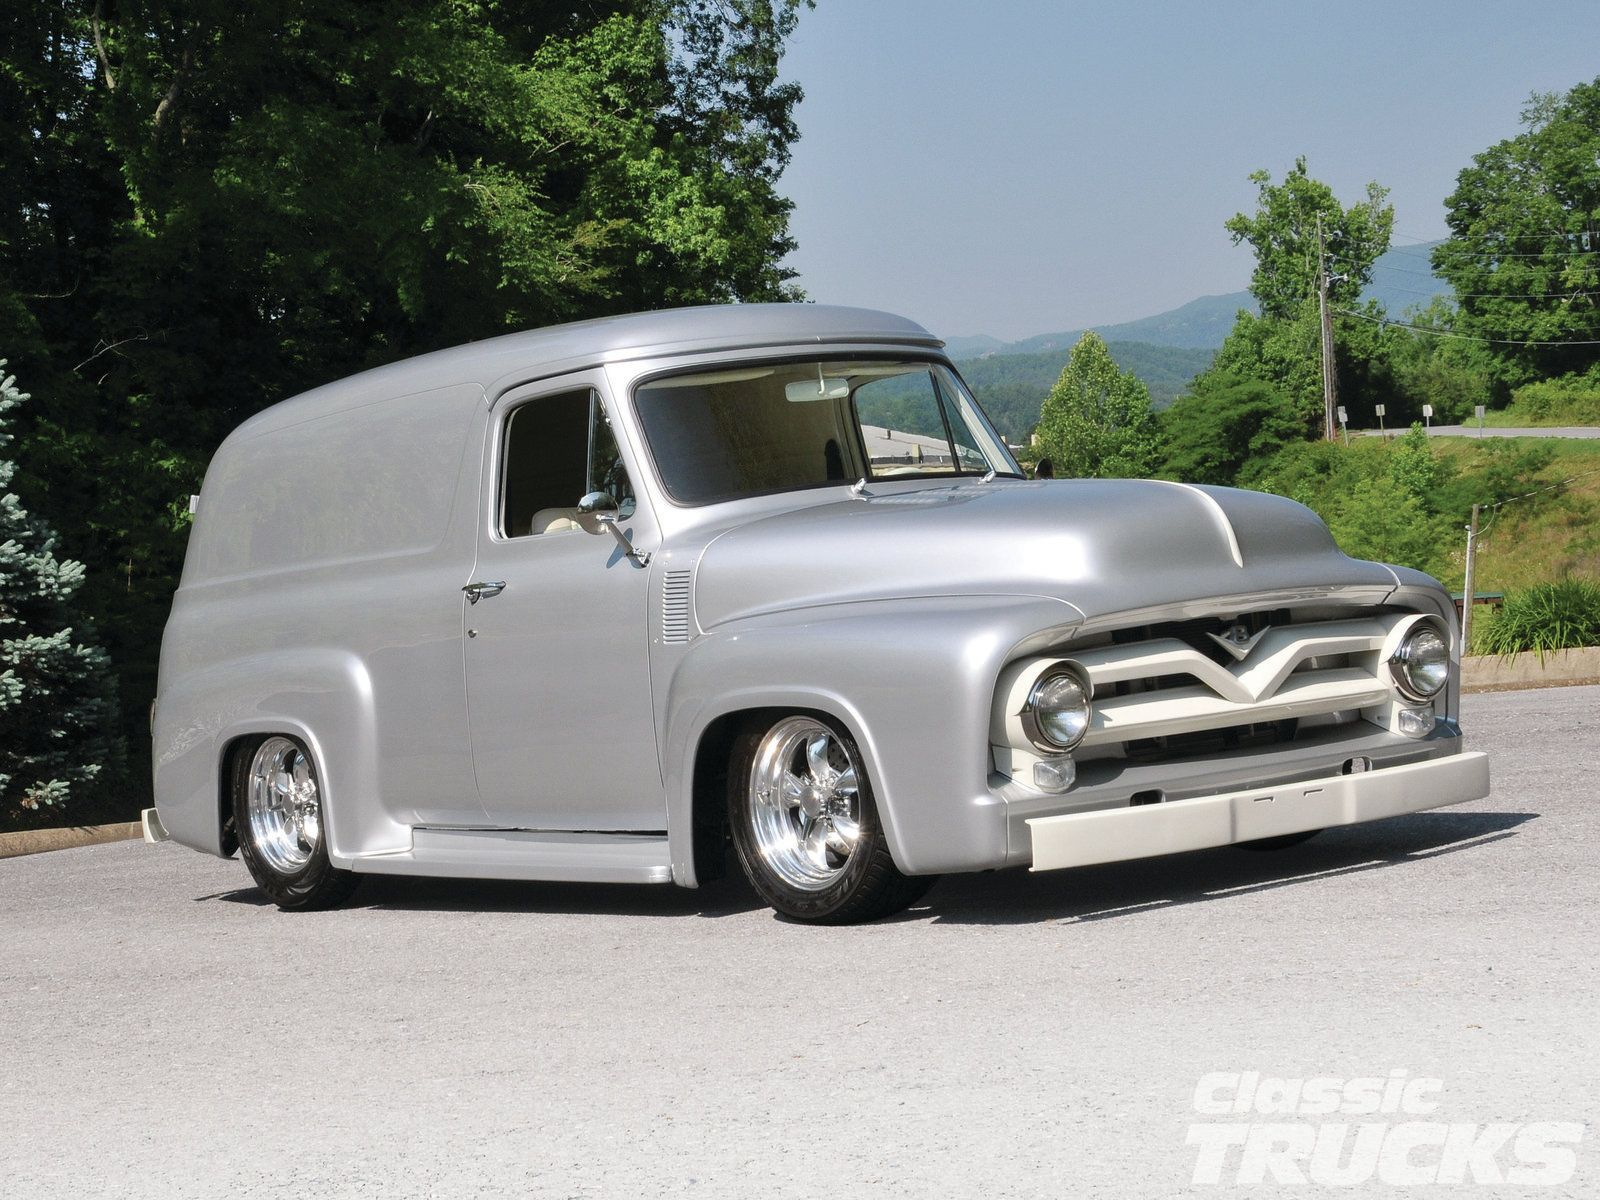 1955 #Ford Panel #Truck: The Rest Of The Story - The Story in the ...